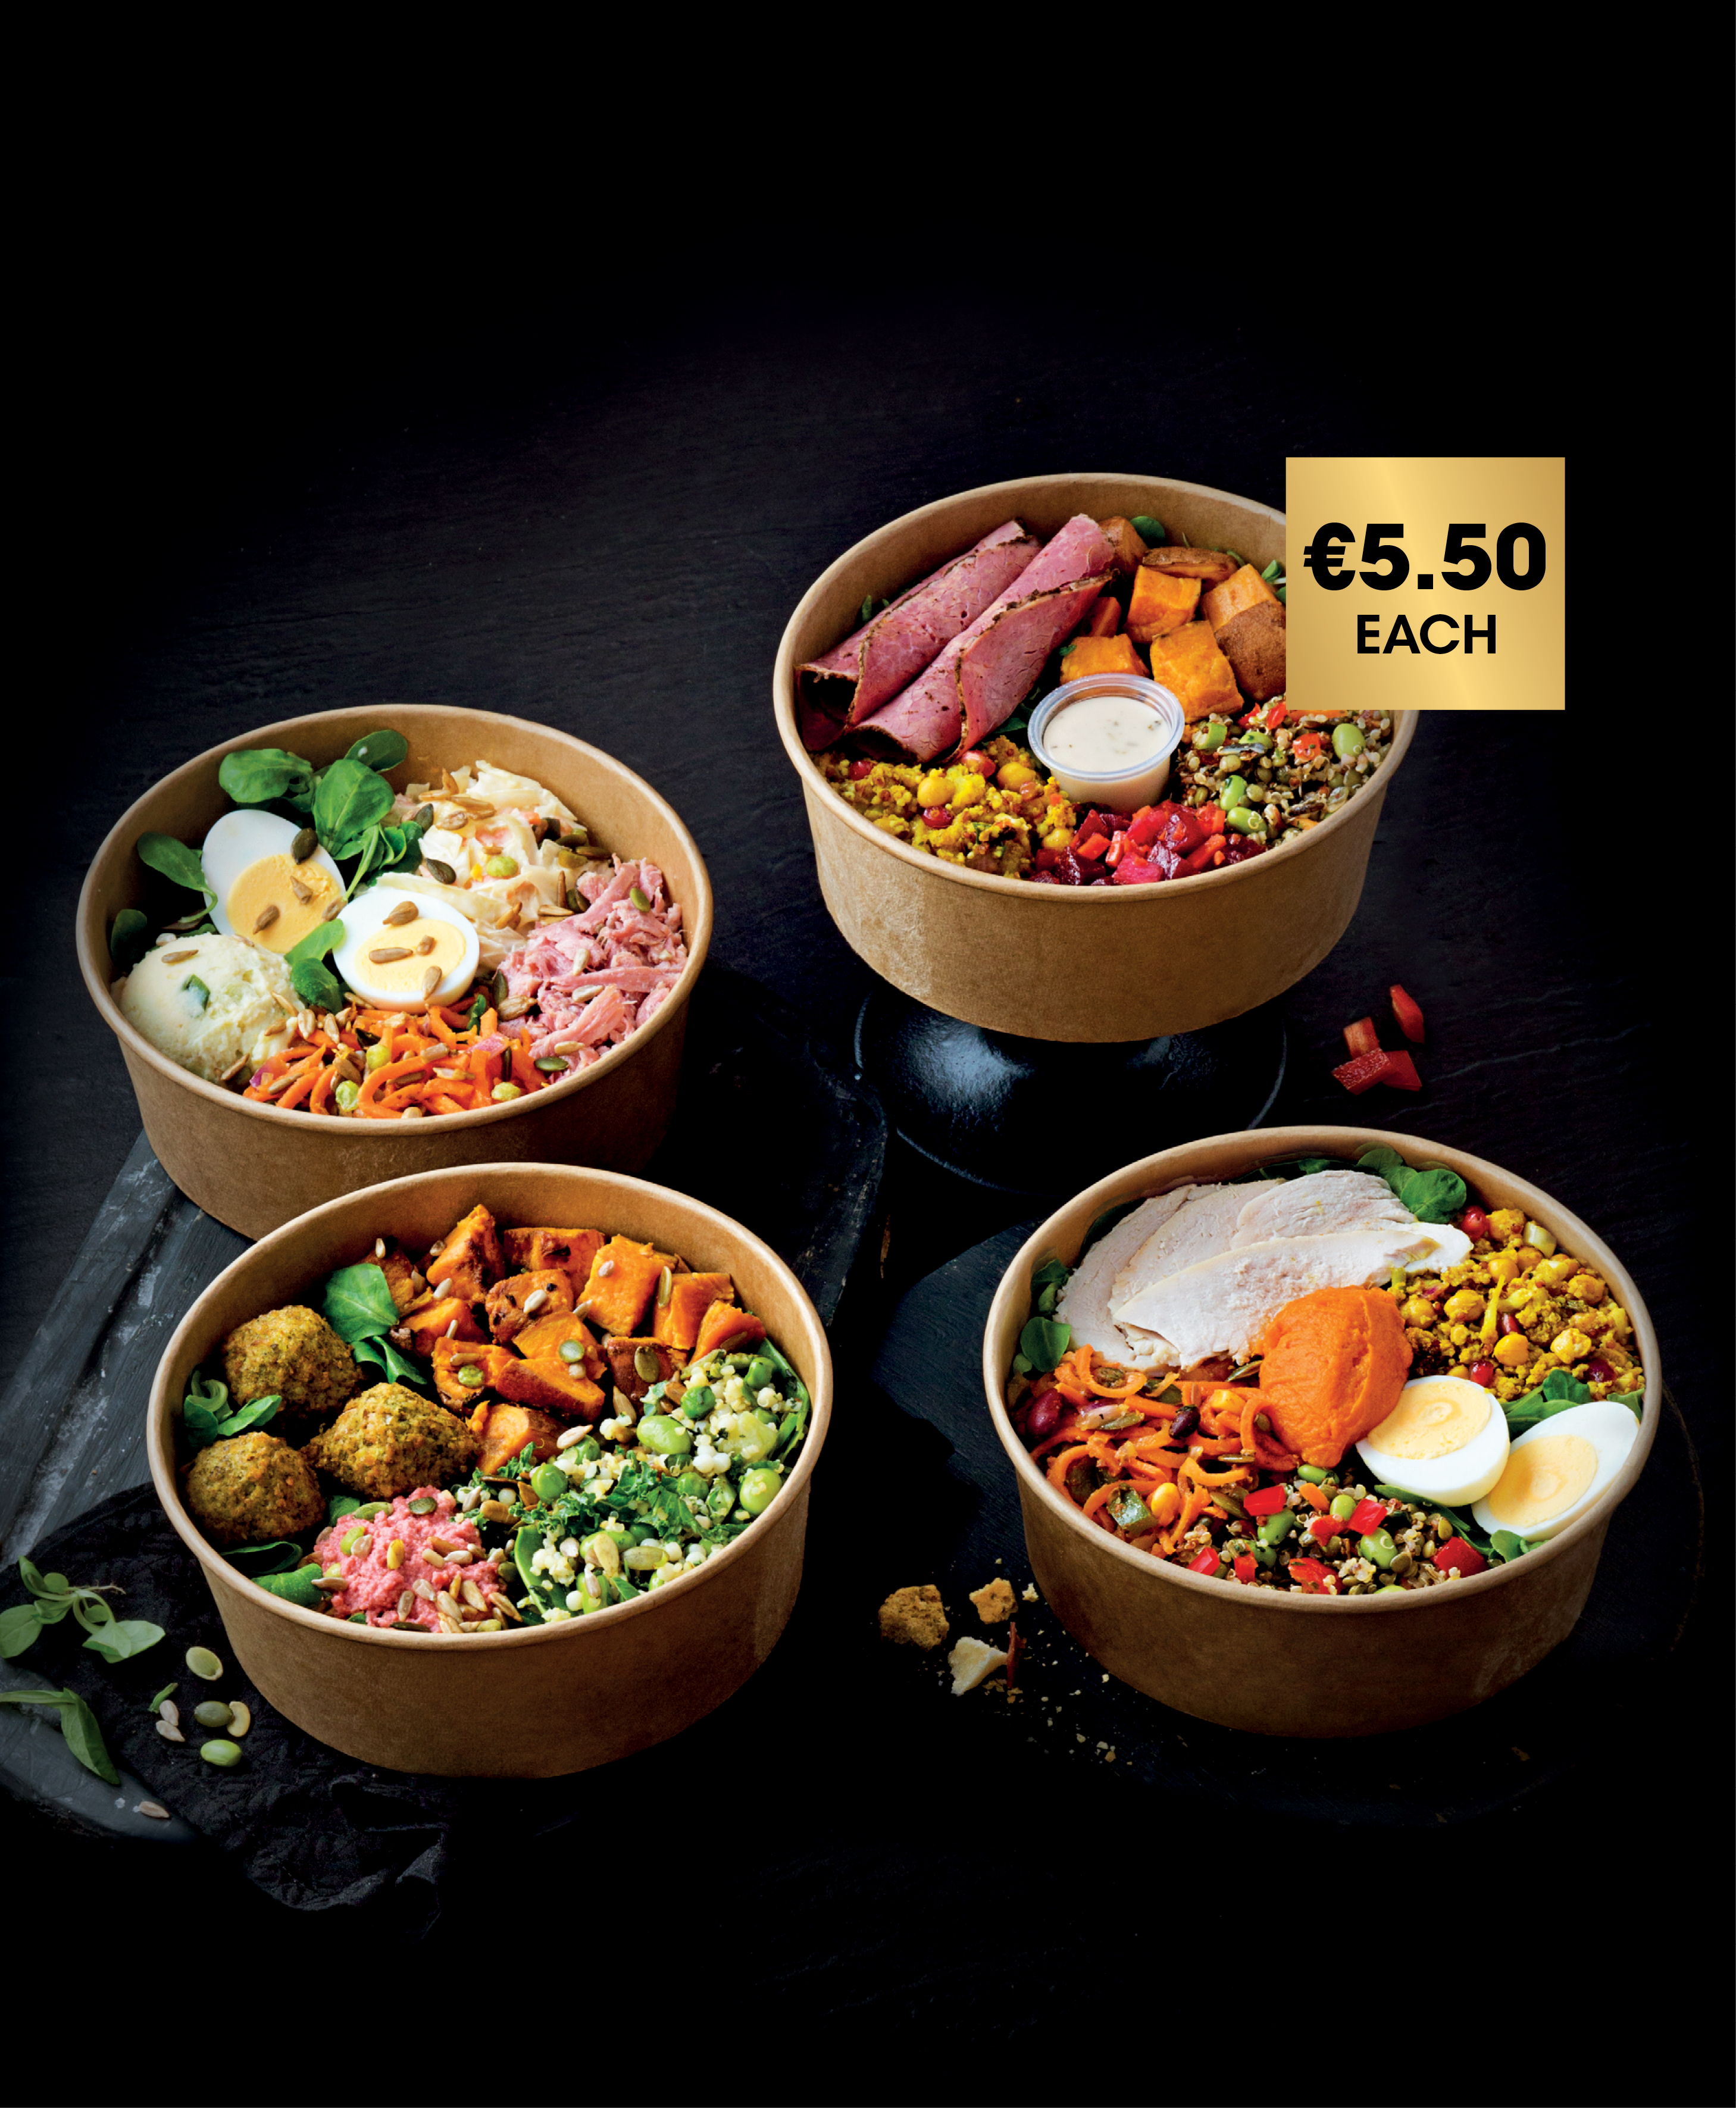 Inspired by Centra Salad Bowl Range